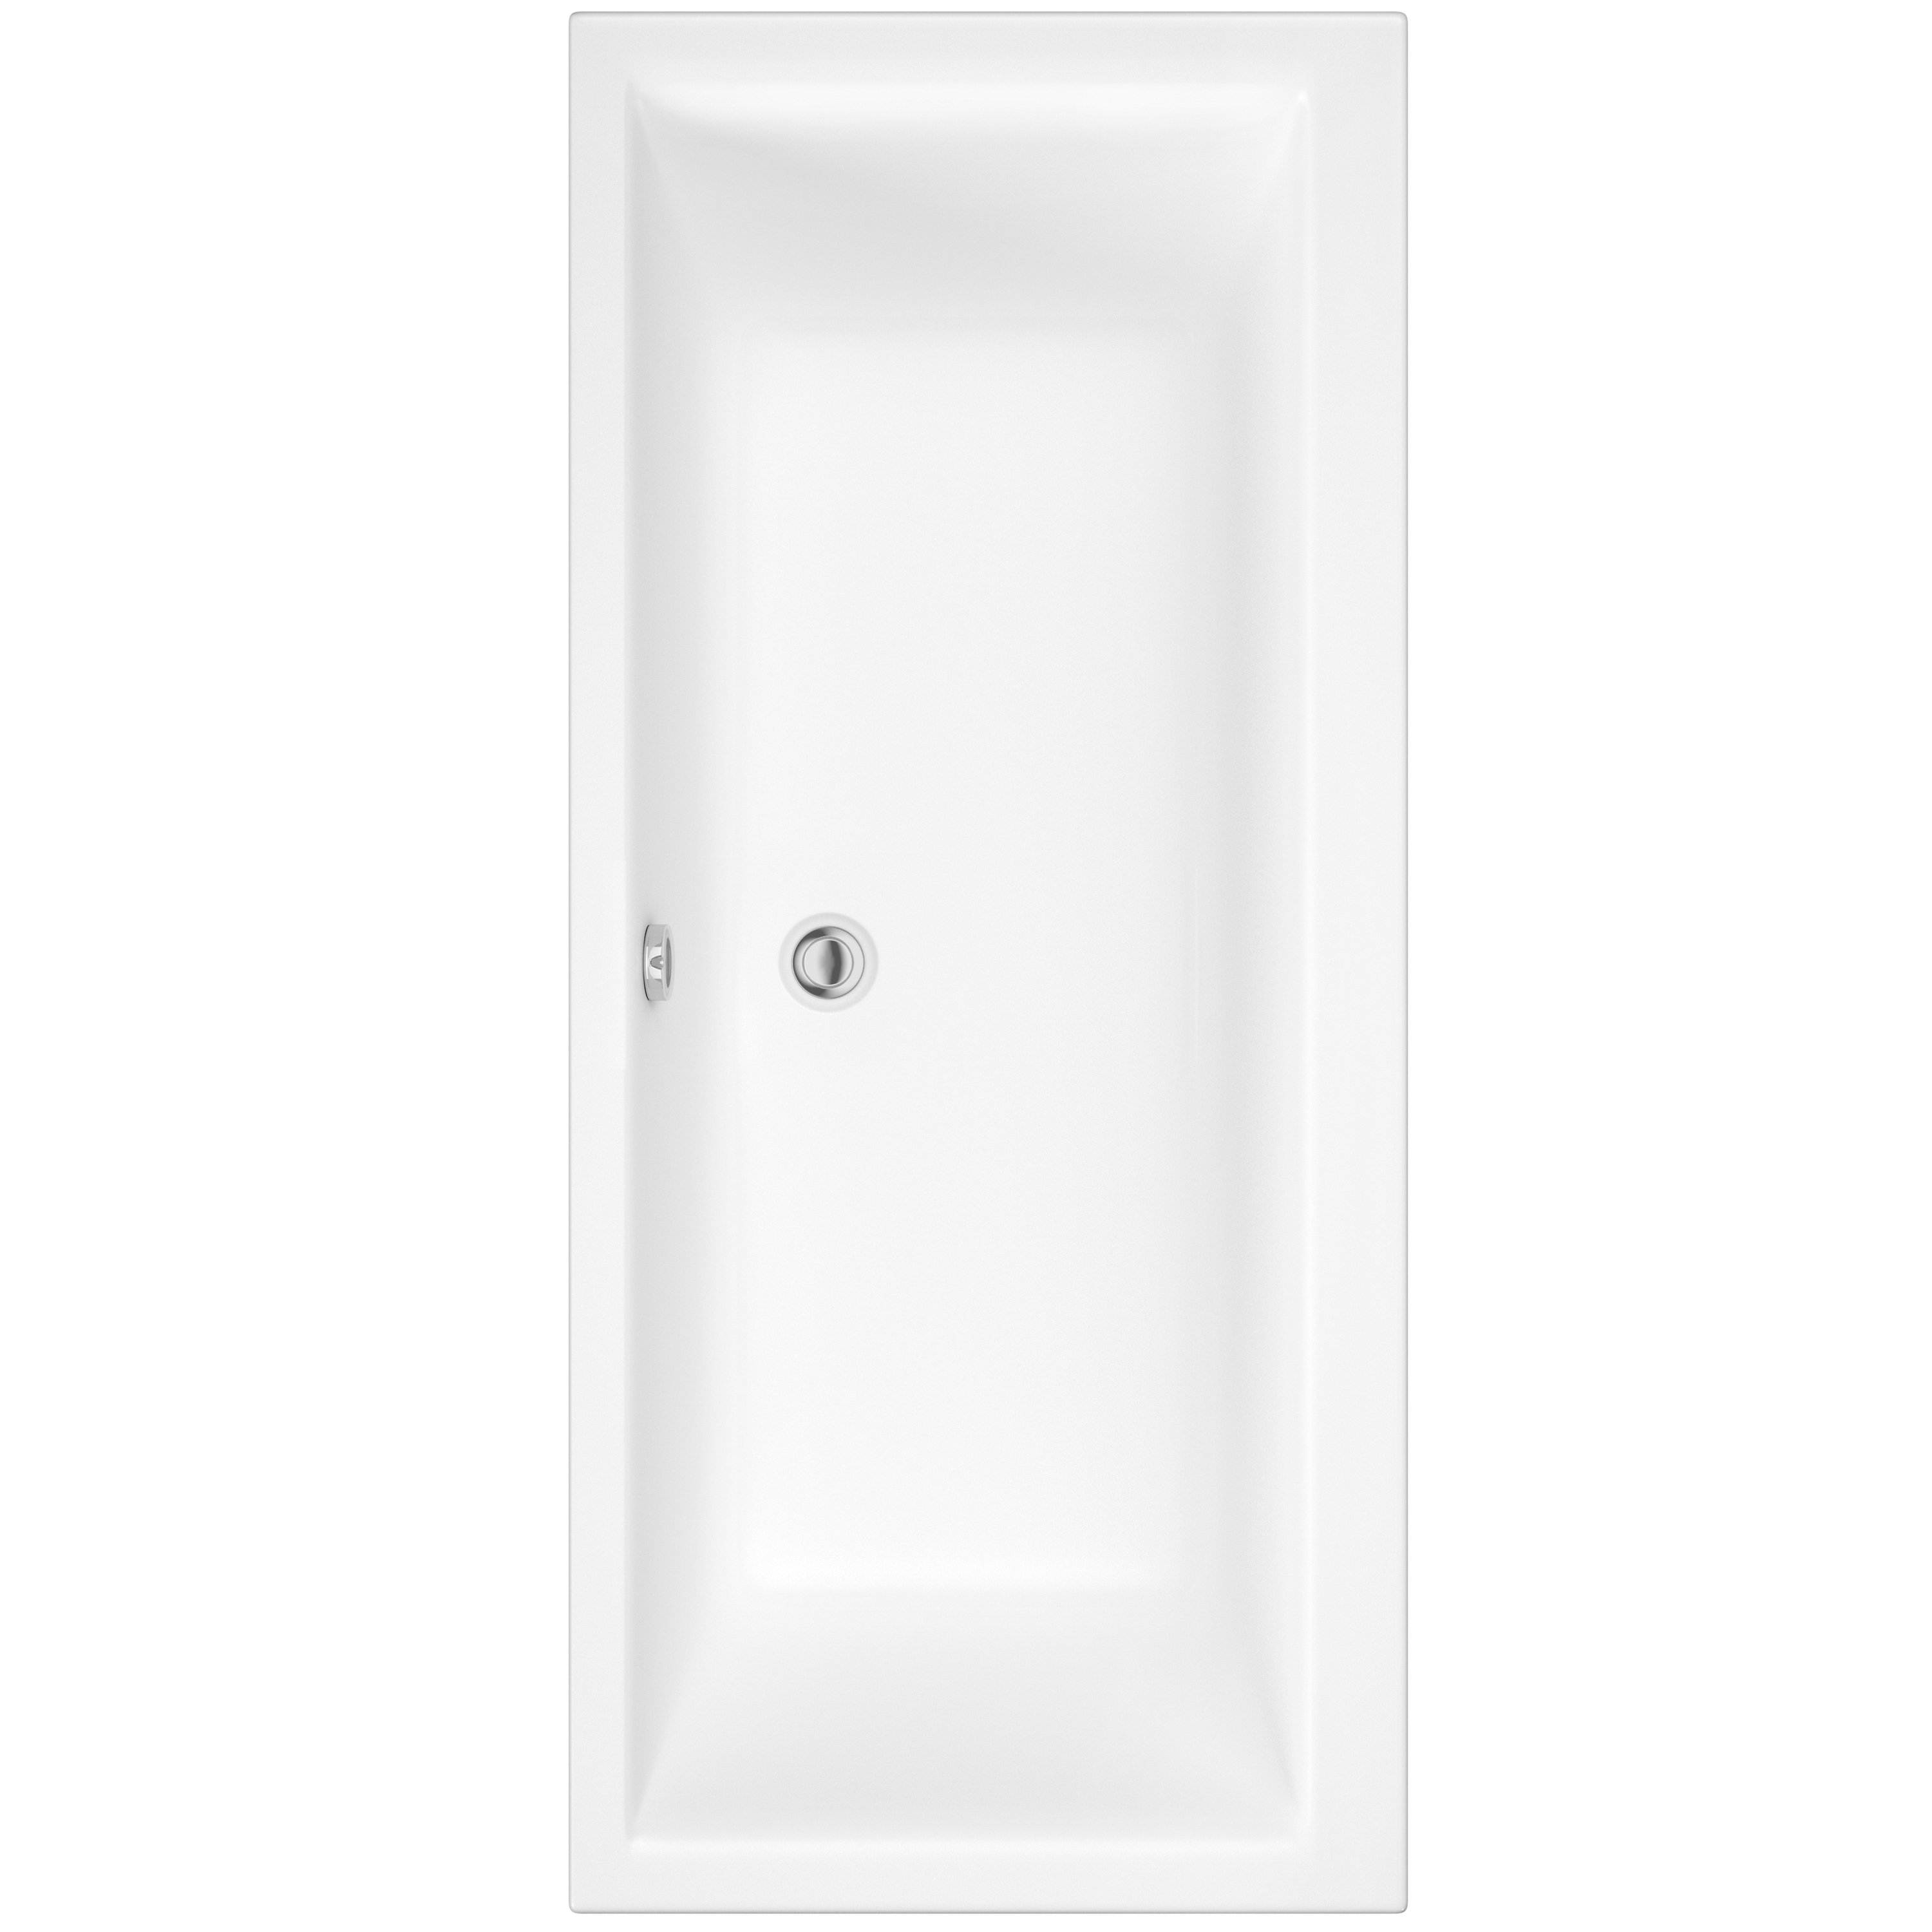 W@sh Double Ended 1700 x 700mm Bath